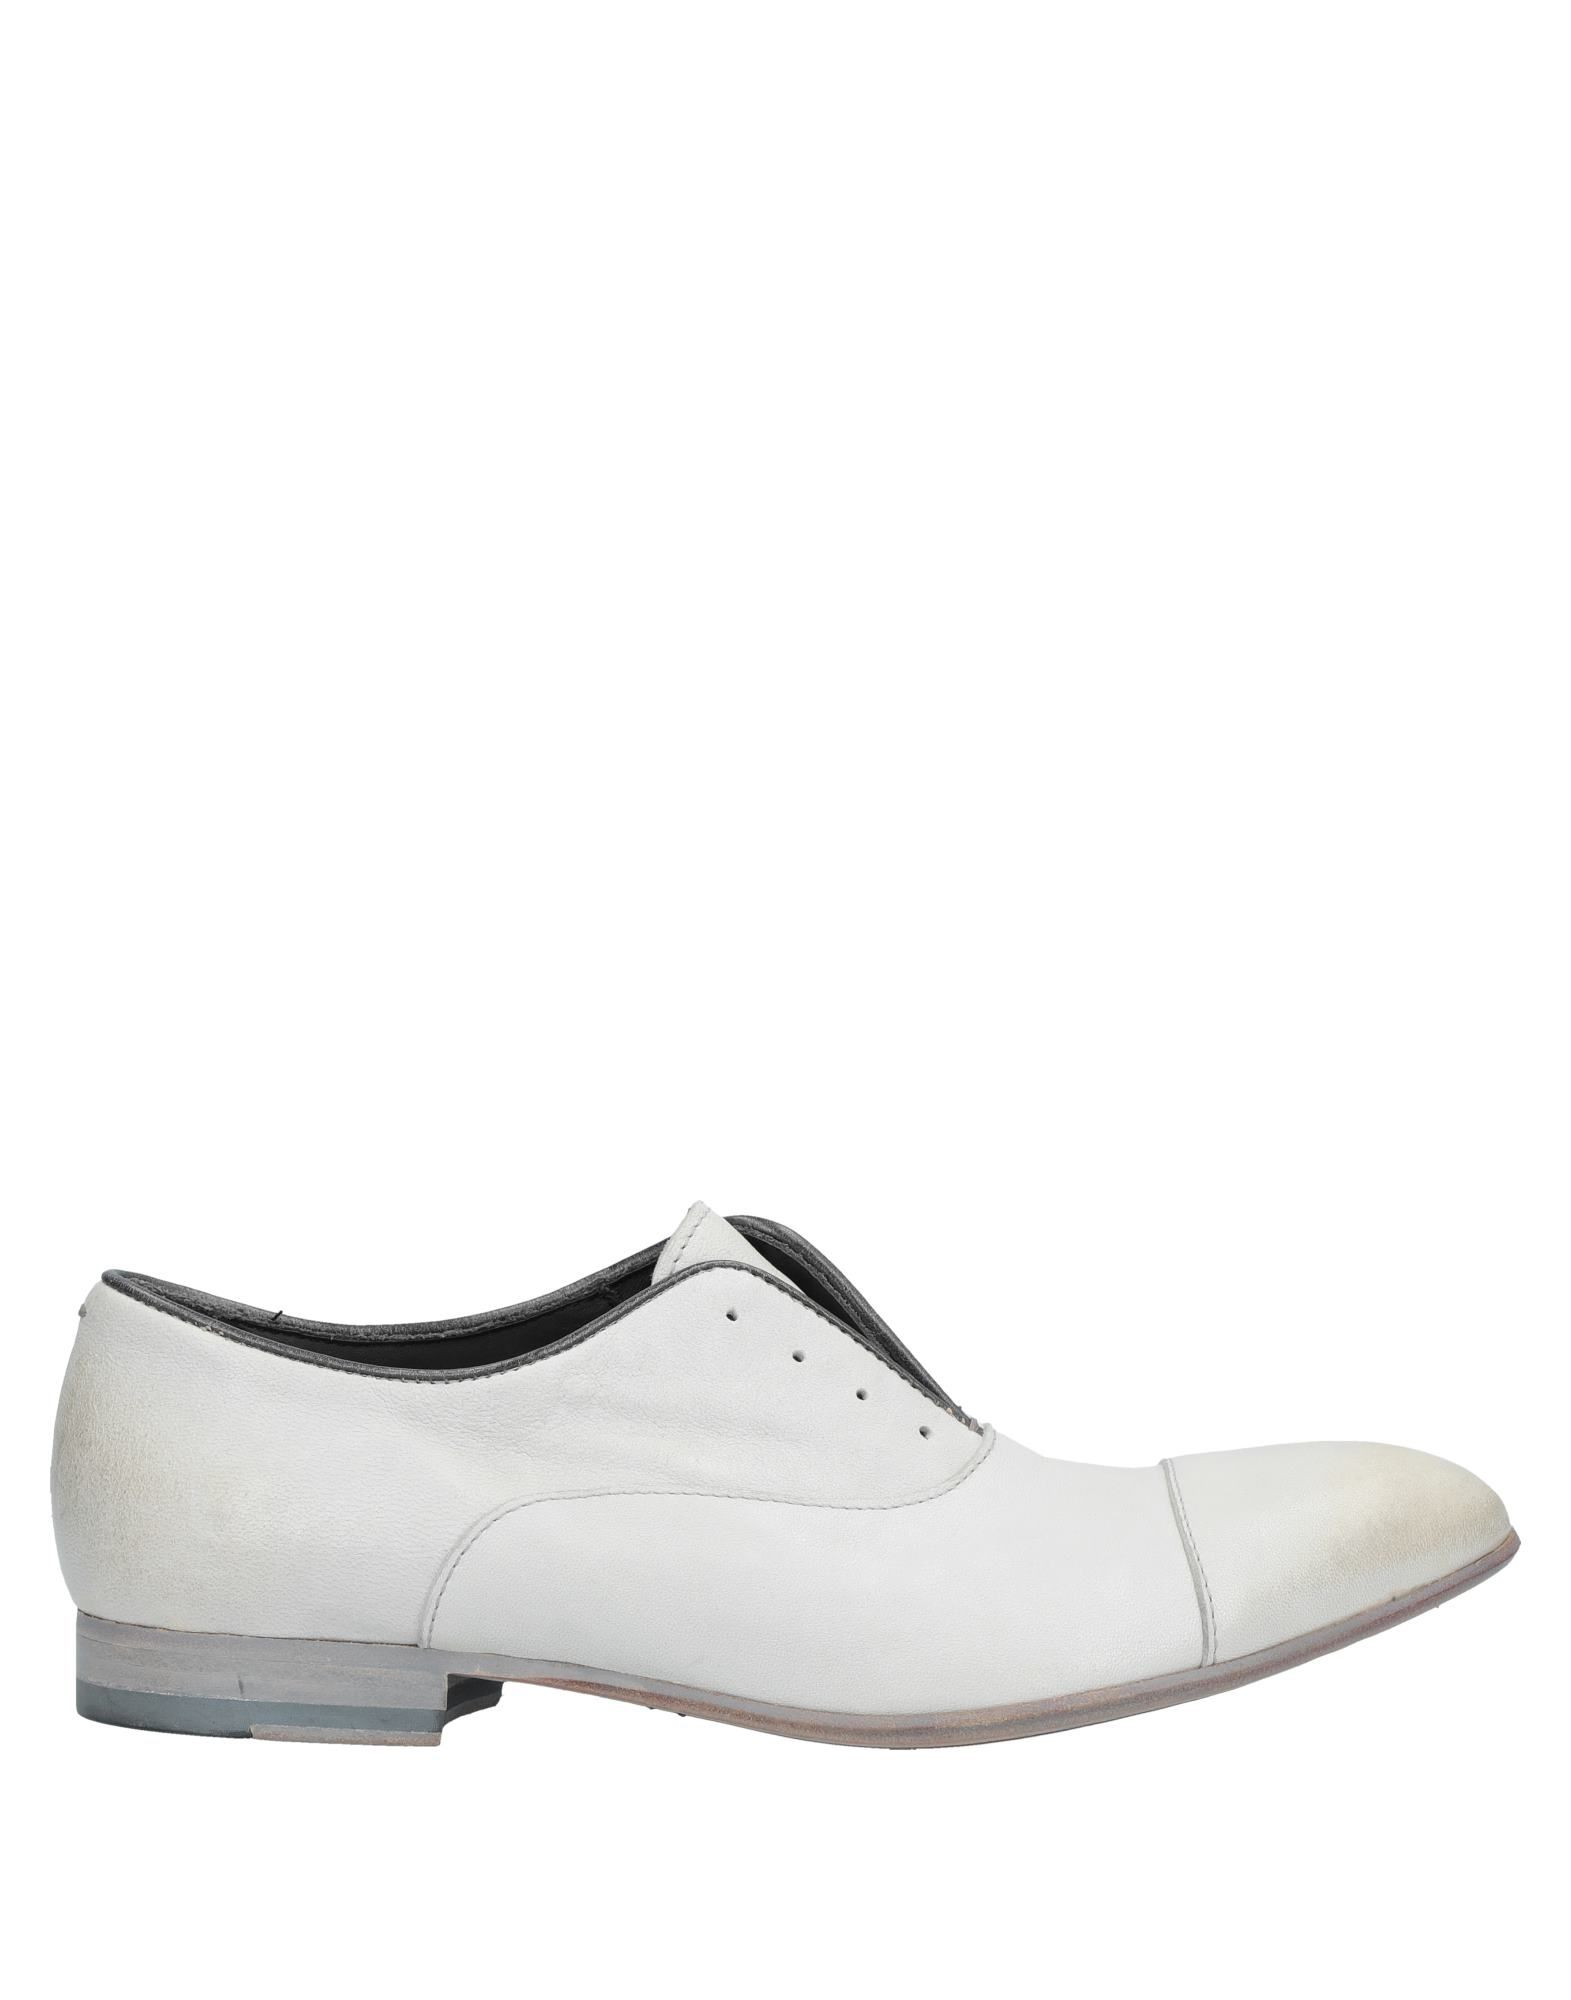 Pantanetti Loafers  - Women Pantanetti Loafers online on  Loafers Australia - 11532859NI 0ccca4